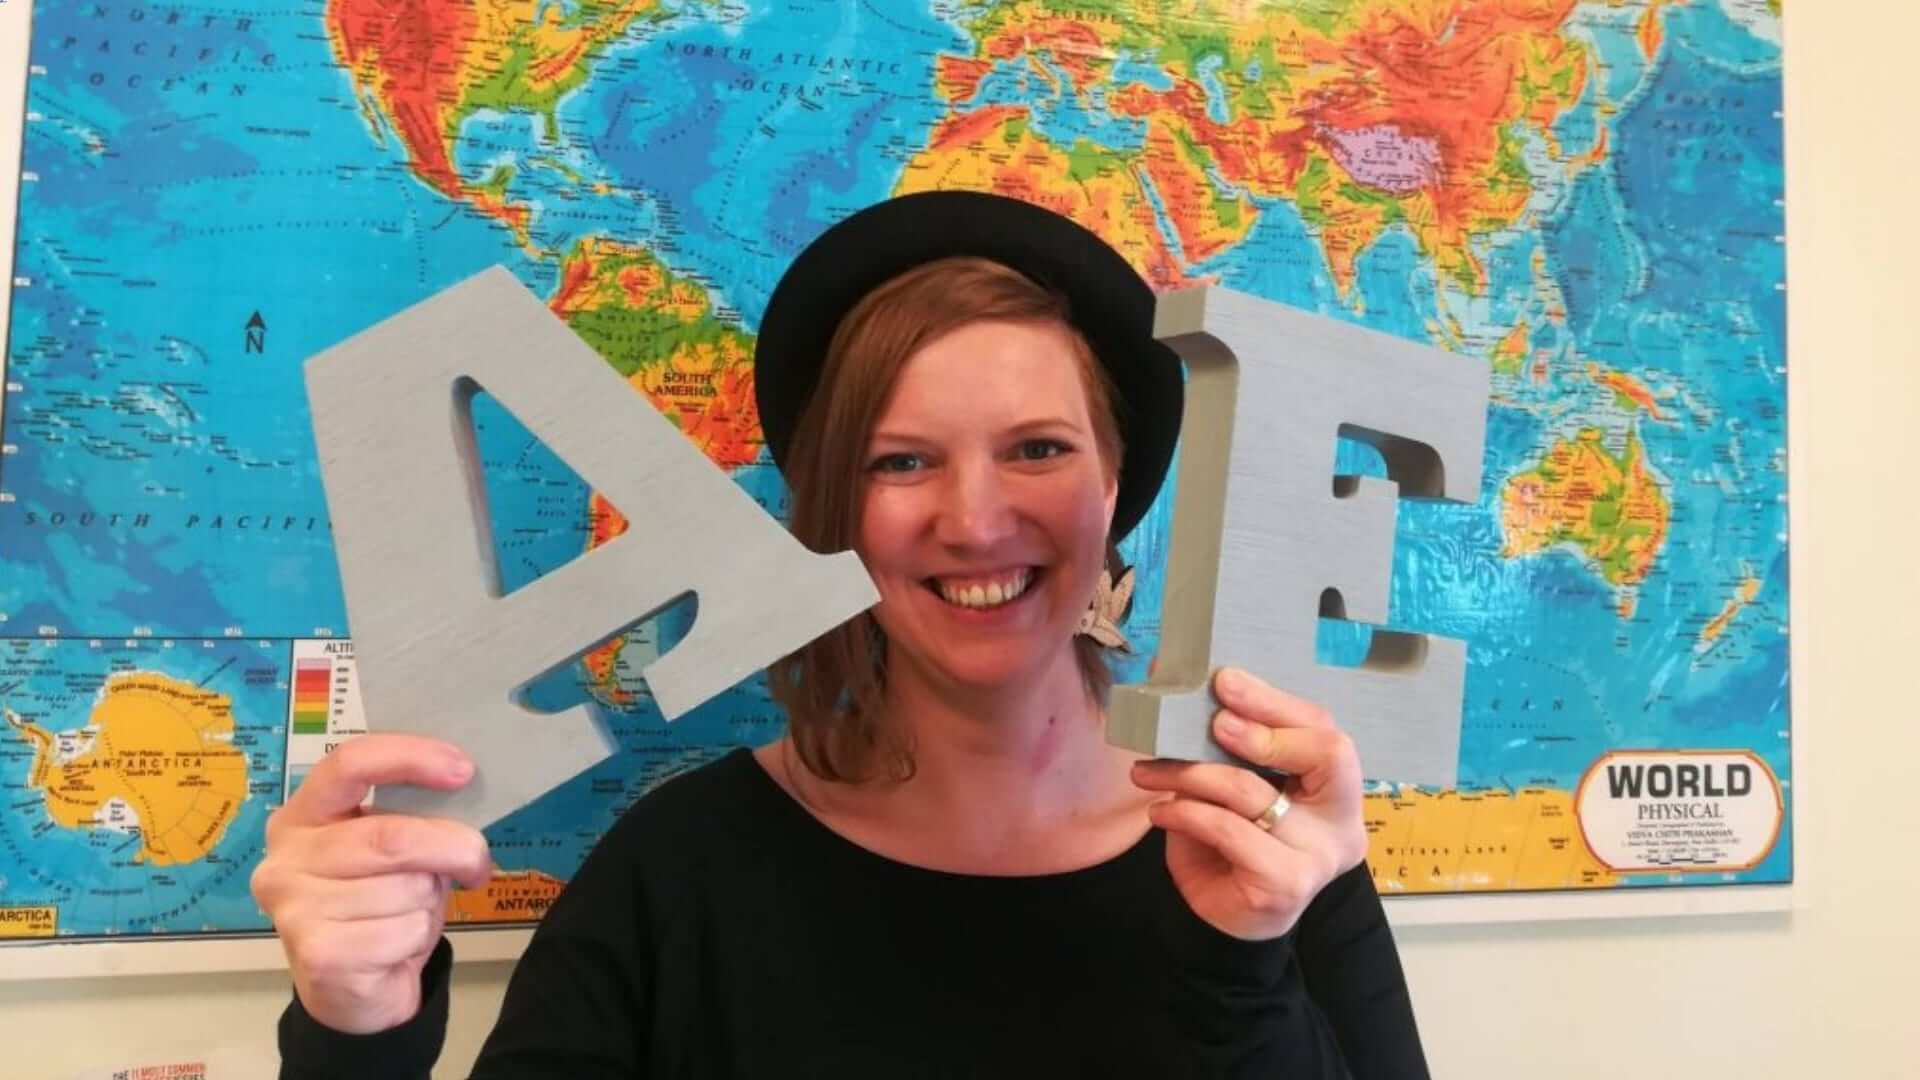 A woman is standing in front of a map holding two letters (A and E) and is smiling.